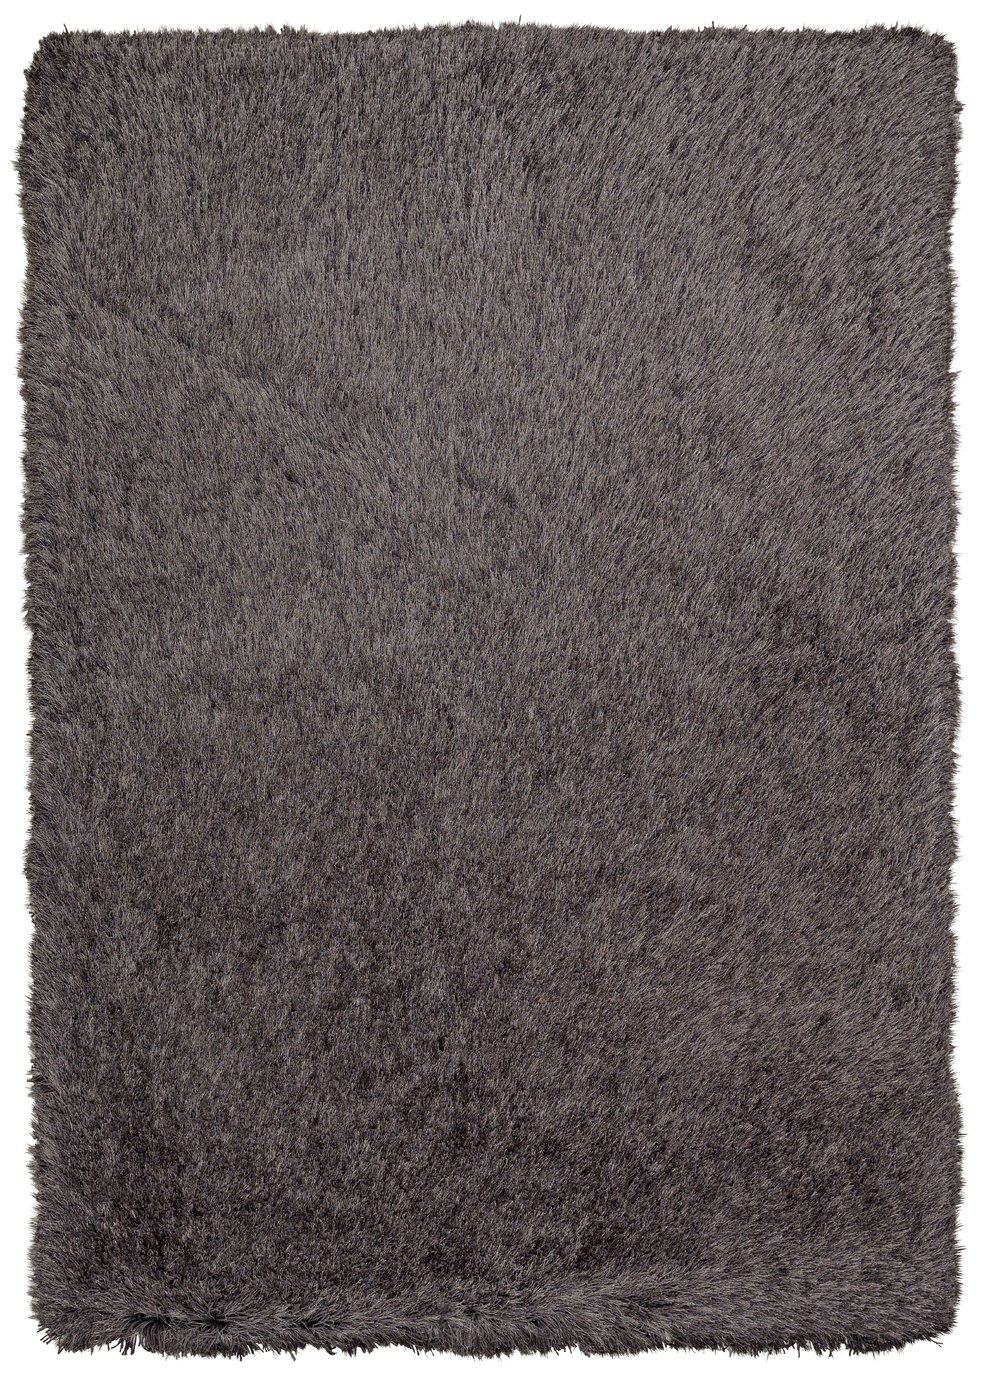 Heart of House Bliss Rug - 160x230cm - Charcoal